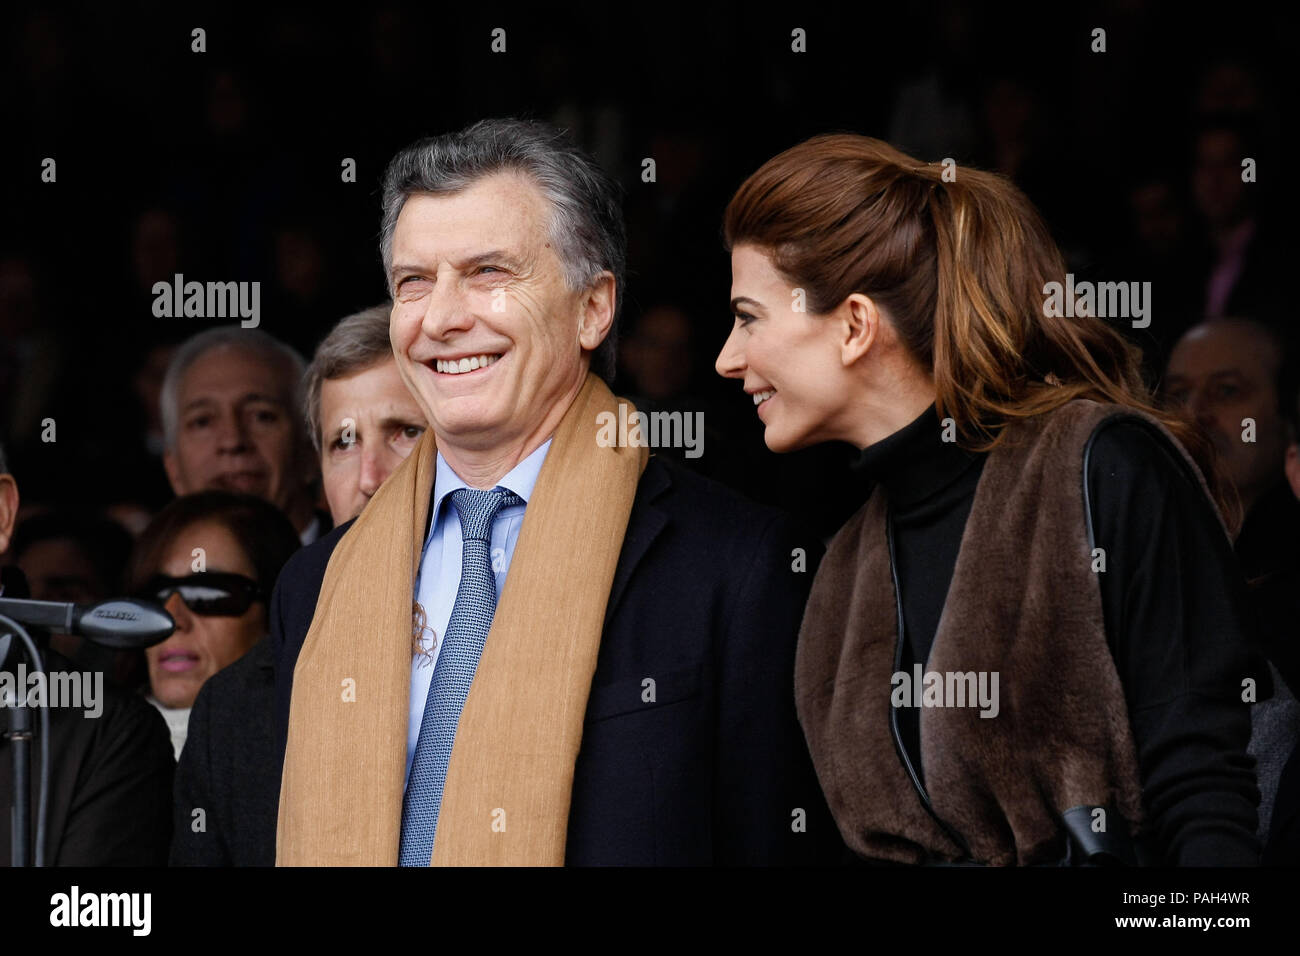 Buenos Aires, Argentina. 30th July, 2016. Argentina President, Mauricio Macri, and his wife, Juliana Awada, at the Inauguration of the Sociedad Rural. - Stock Image